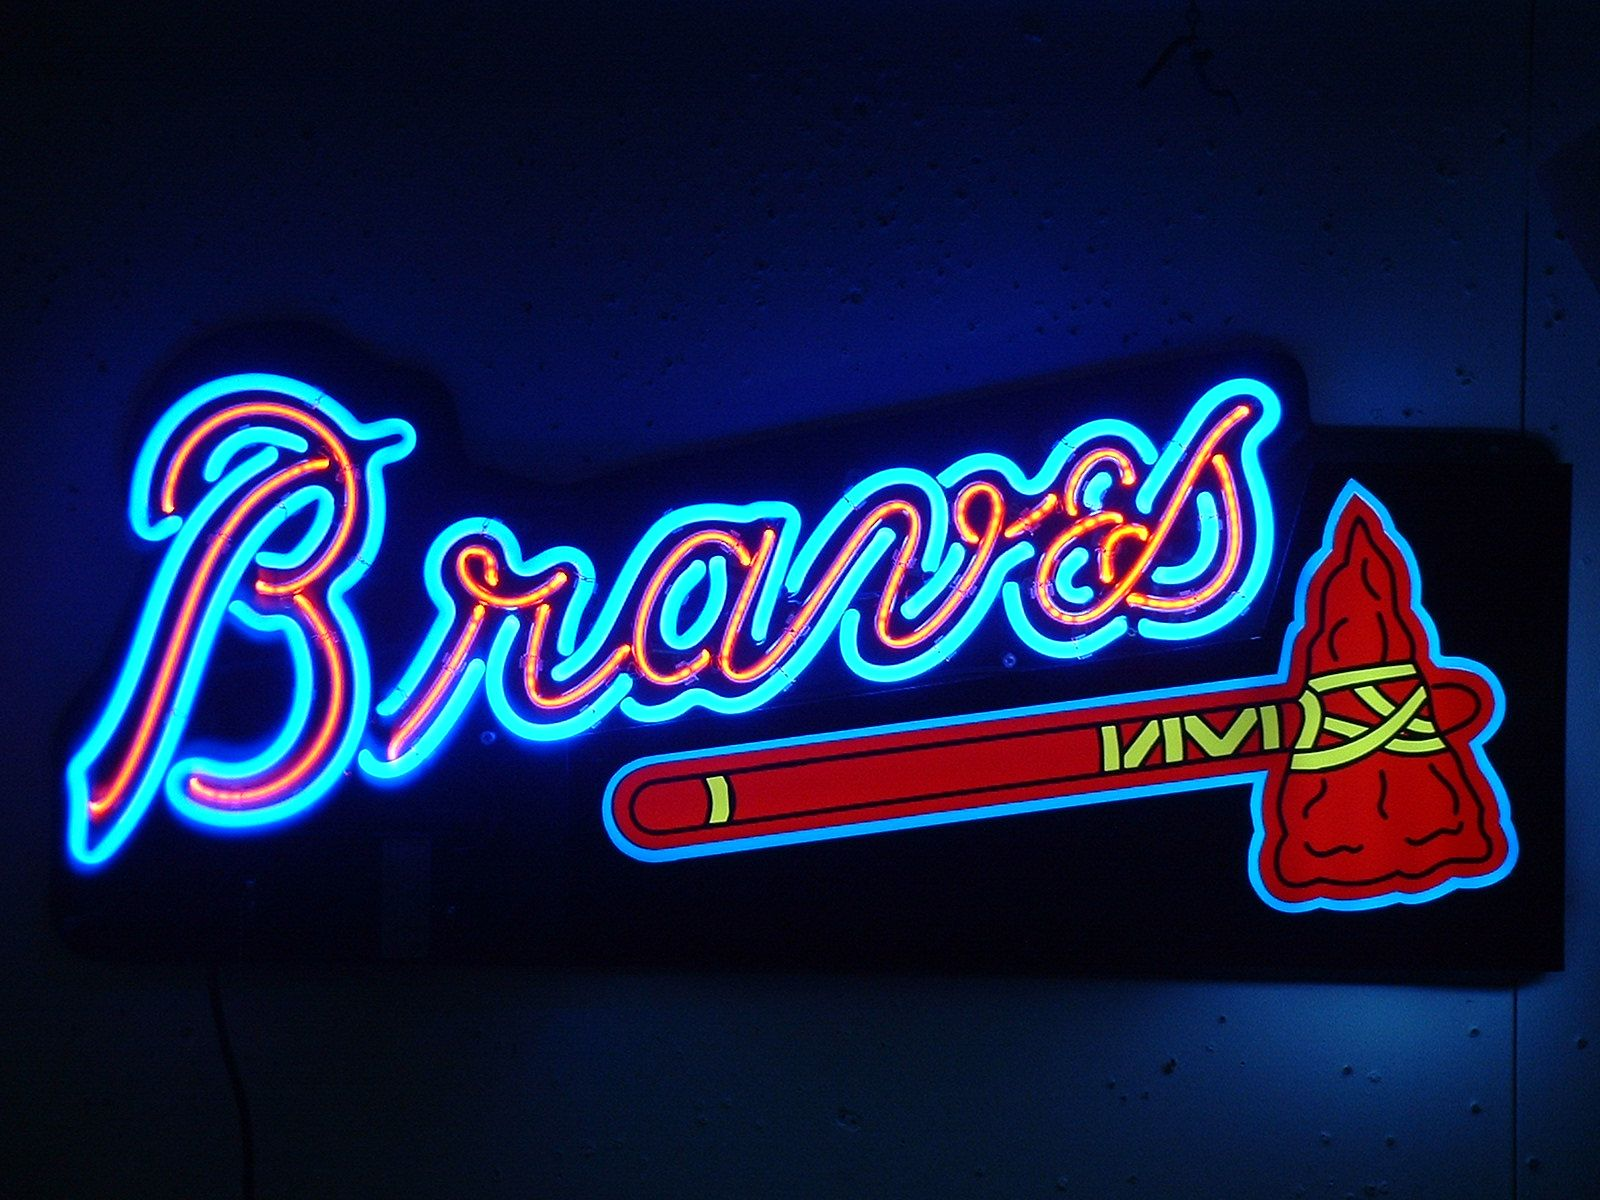 Braves Neon Sign In 2020 Neon Signs Custom Neon Signs Neon Signs For Sale